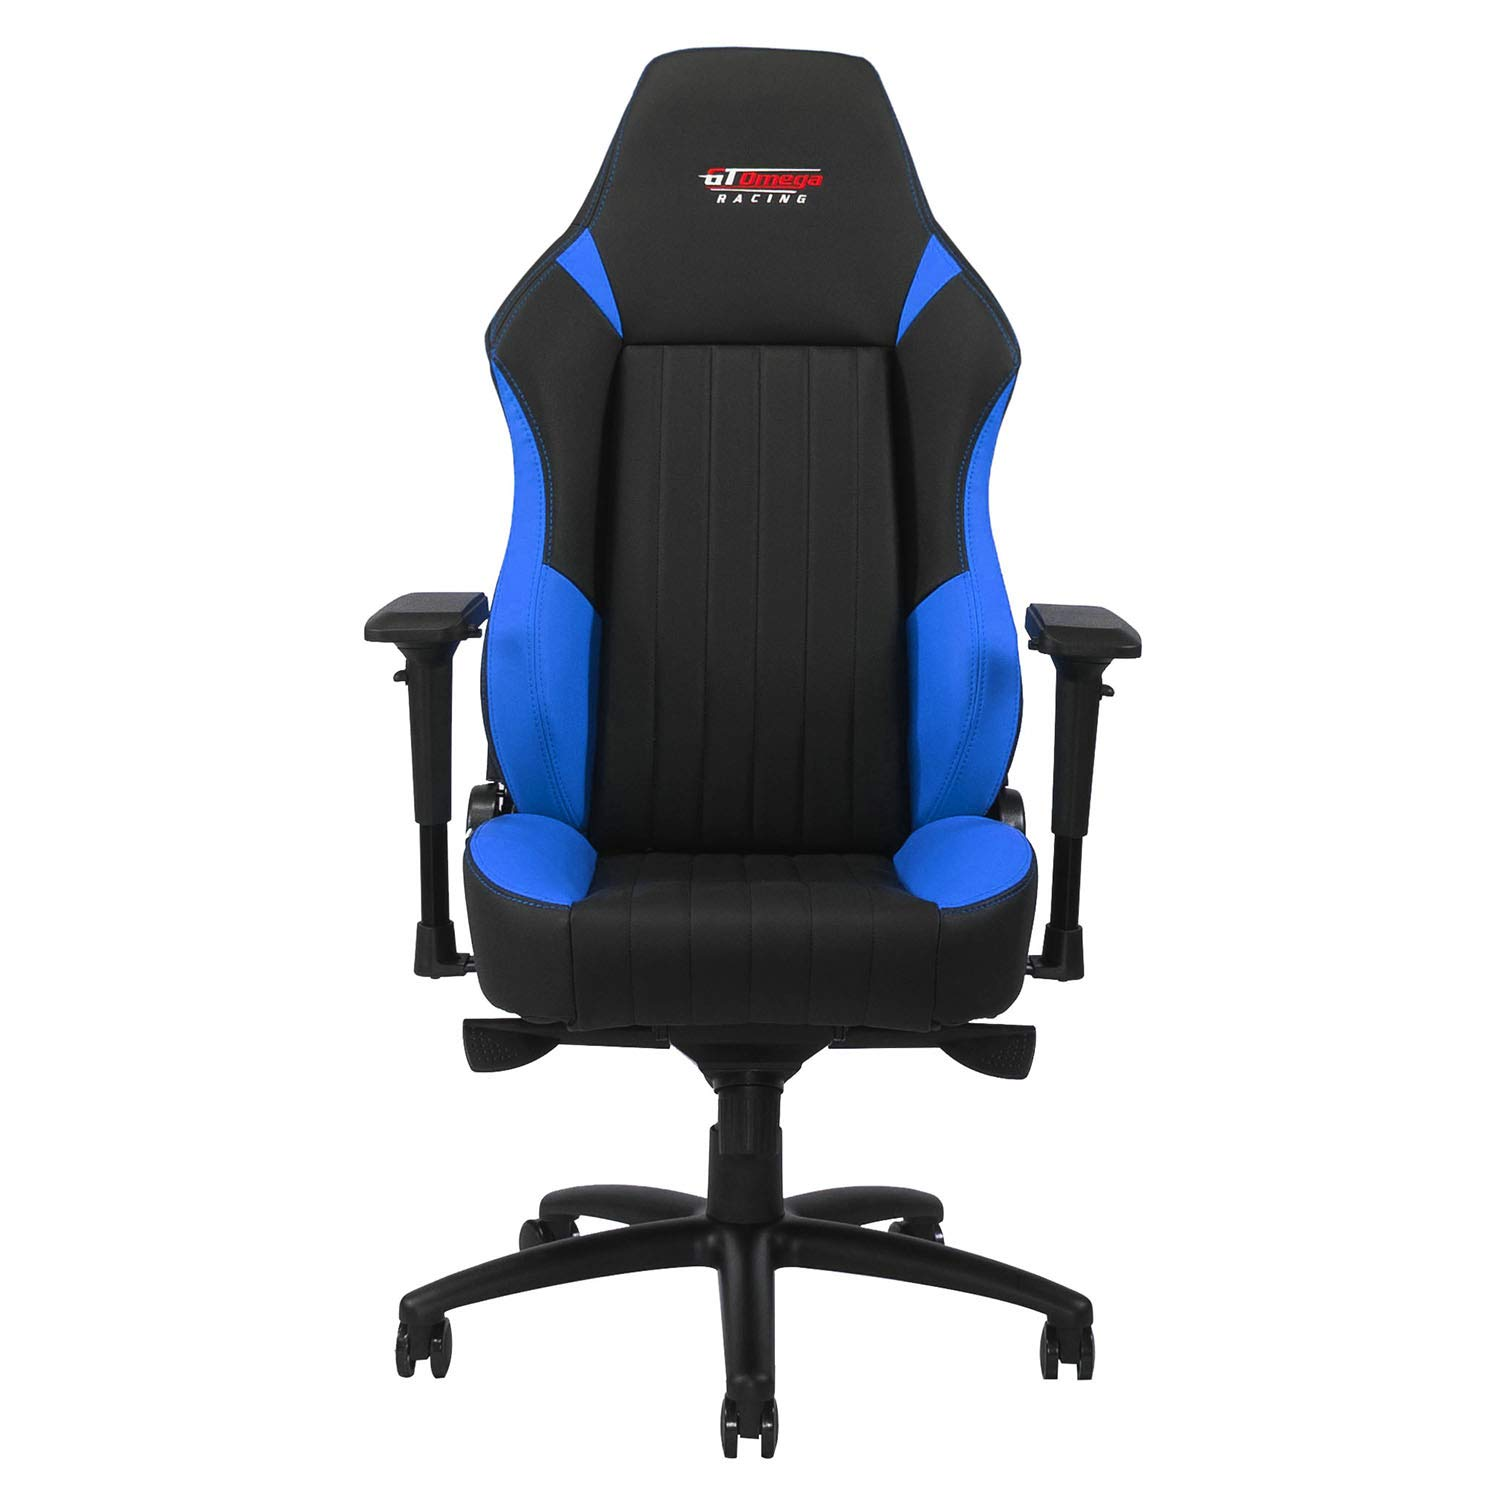 GT OMEGA EVO XL Racing Gaming Chair with Lumbar Support - Heavy Duty Ergonomic Office Desk Chair with 4D Adjustable Armrest & Recliner - PVC Leather Esport Seat for Racing Console - Black & Blue by GT OMEGA